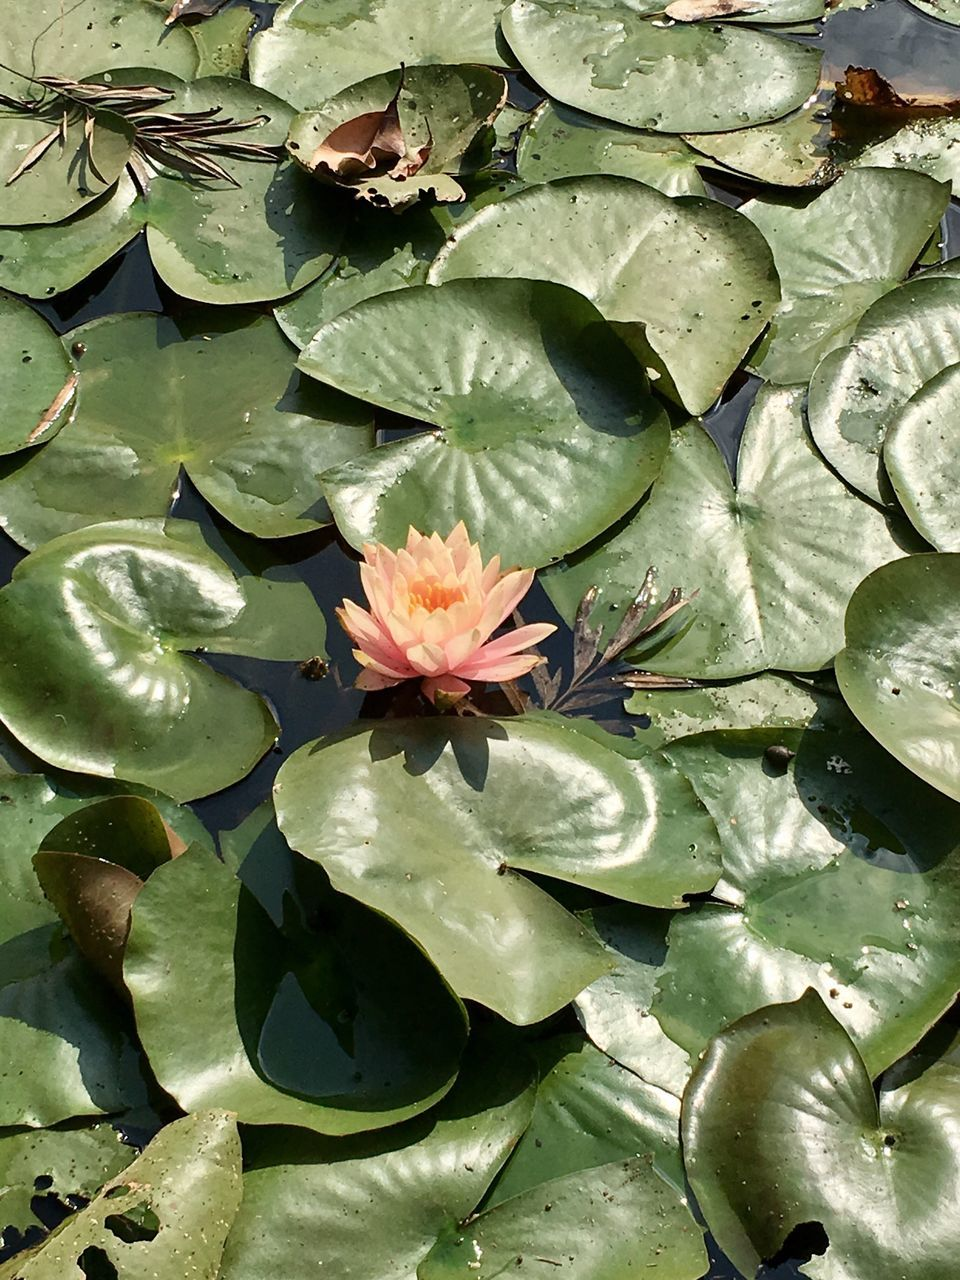 leaf, flower, growth, water lily, beauty in nature, nature, plant, lily pad, floating on water, no people, freshness, petal, water, lotus water lily, flower head, fragility, blooming, outdoors, close-up, day